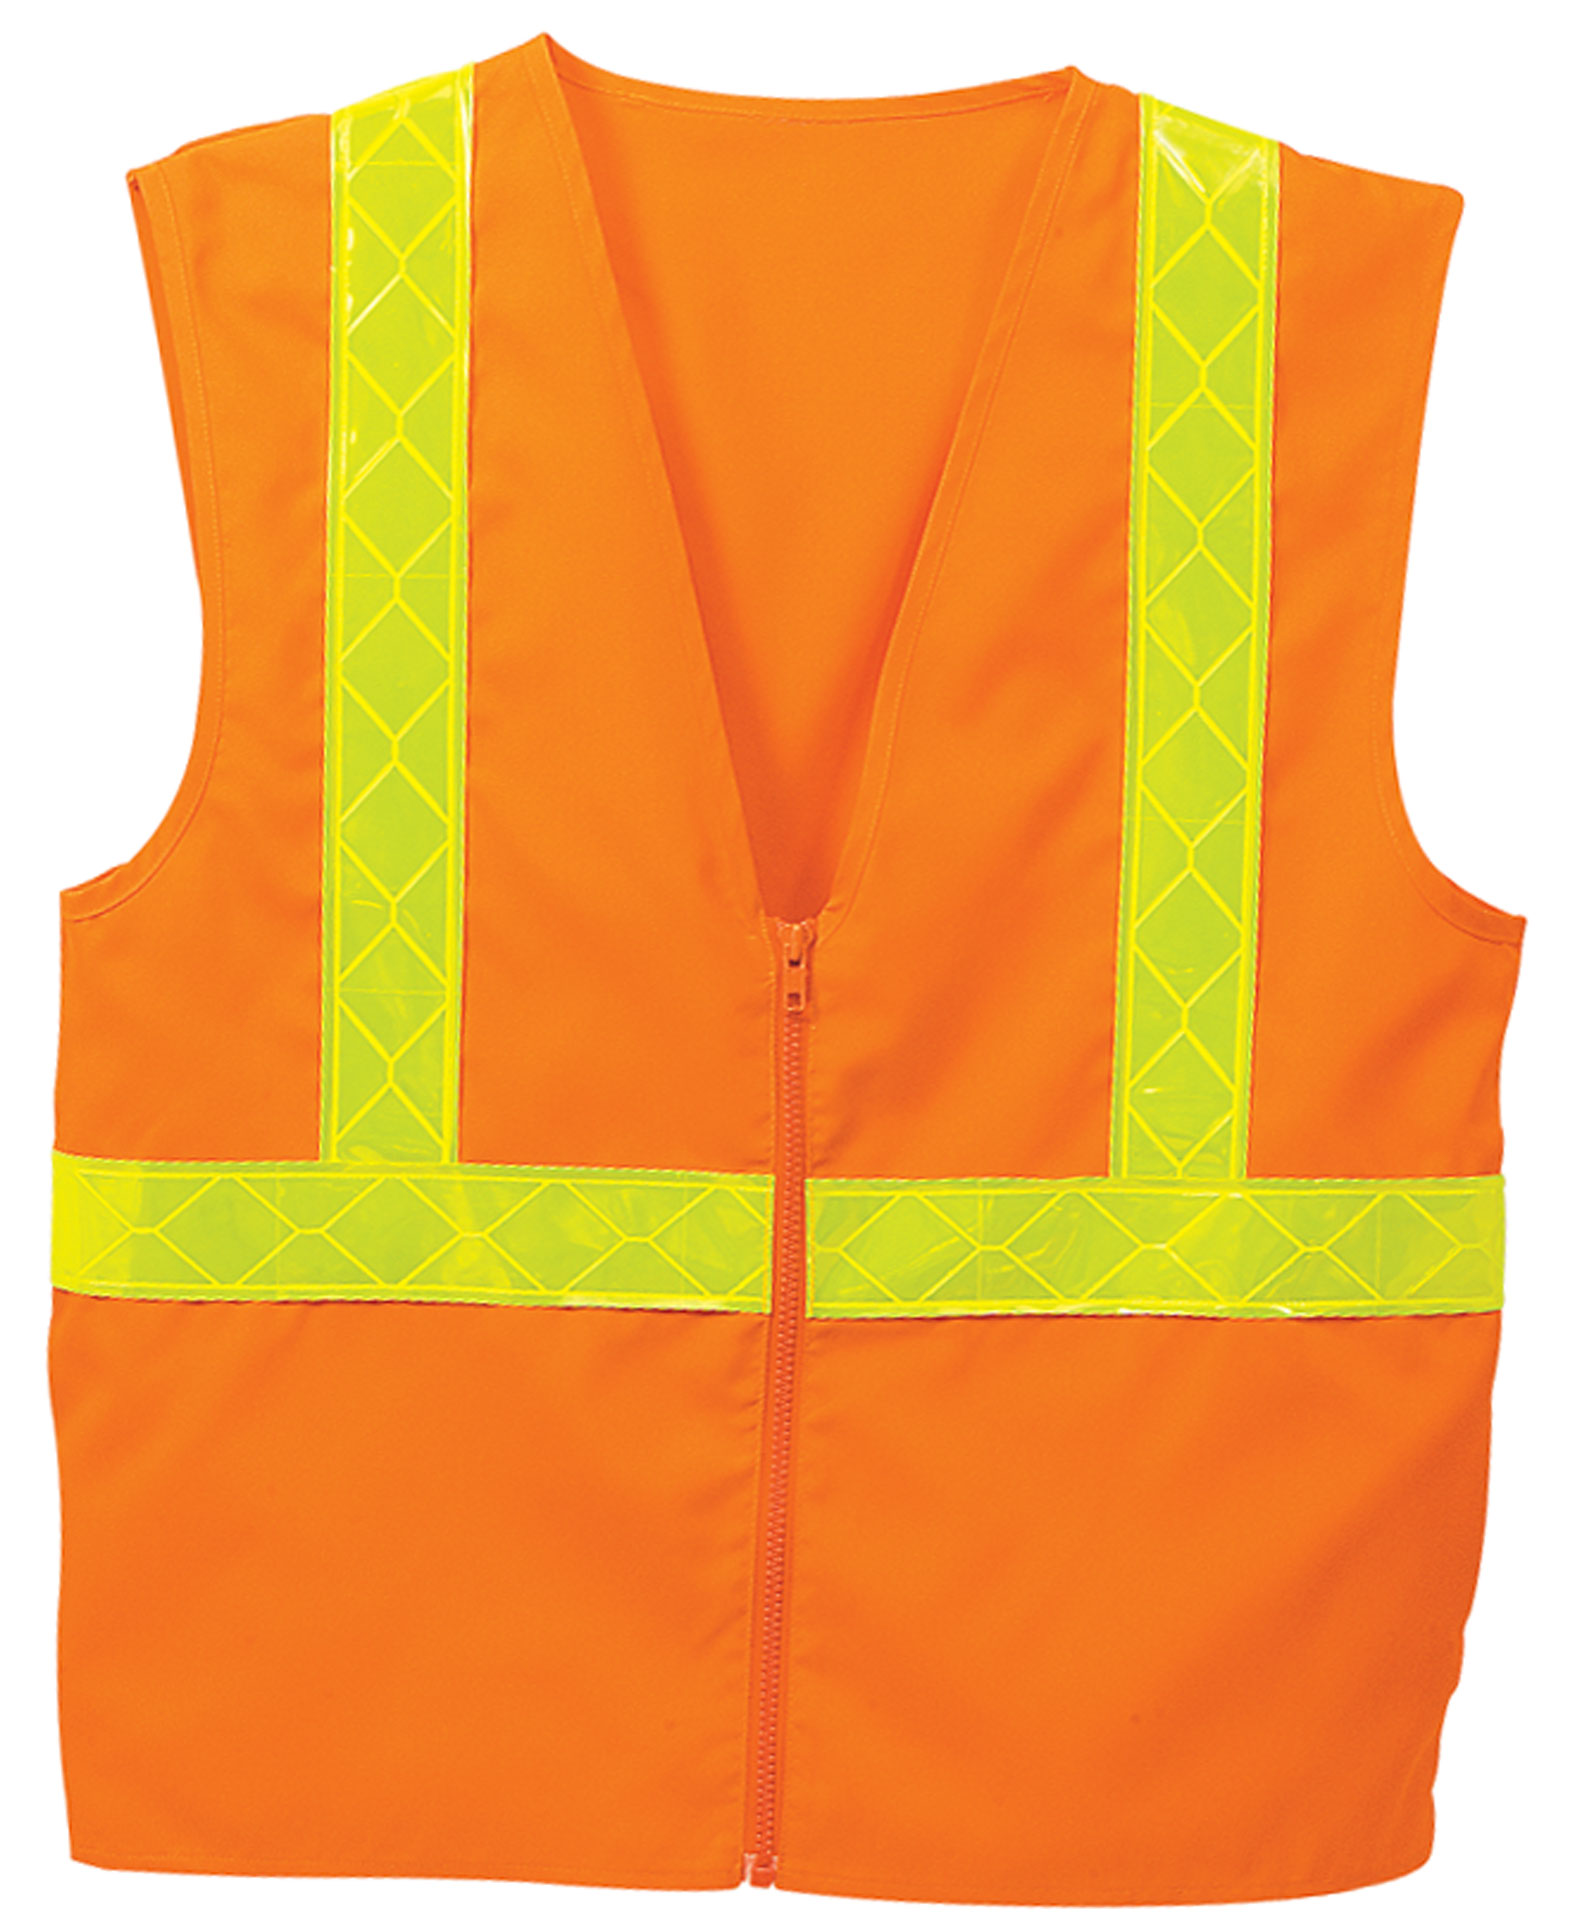 Adult Fluorescent Safety Vest